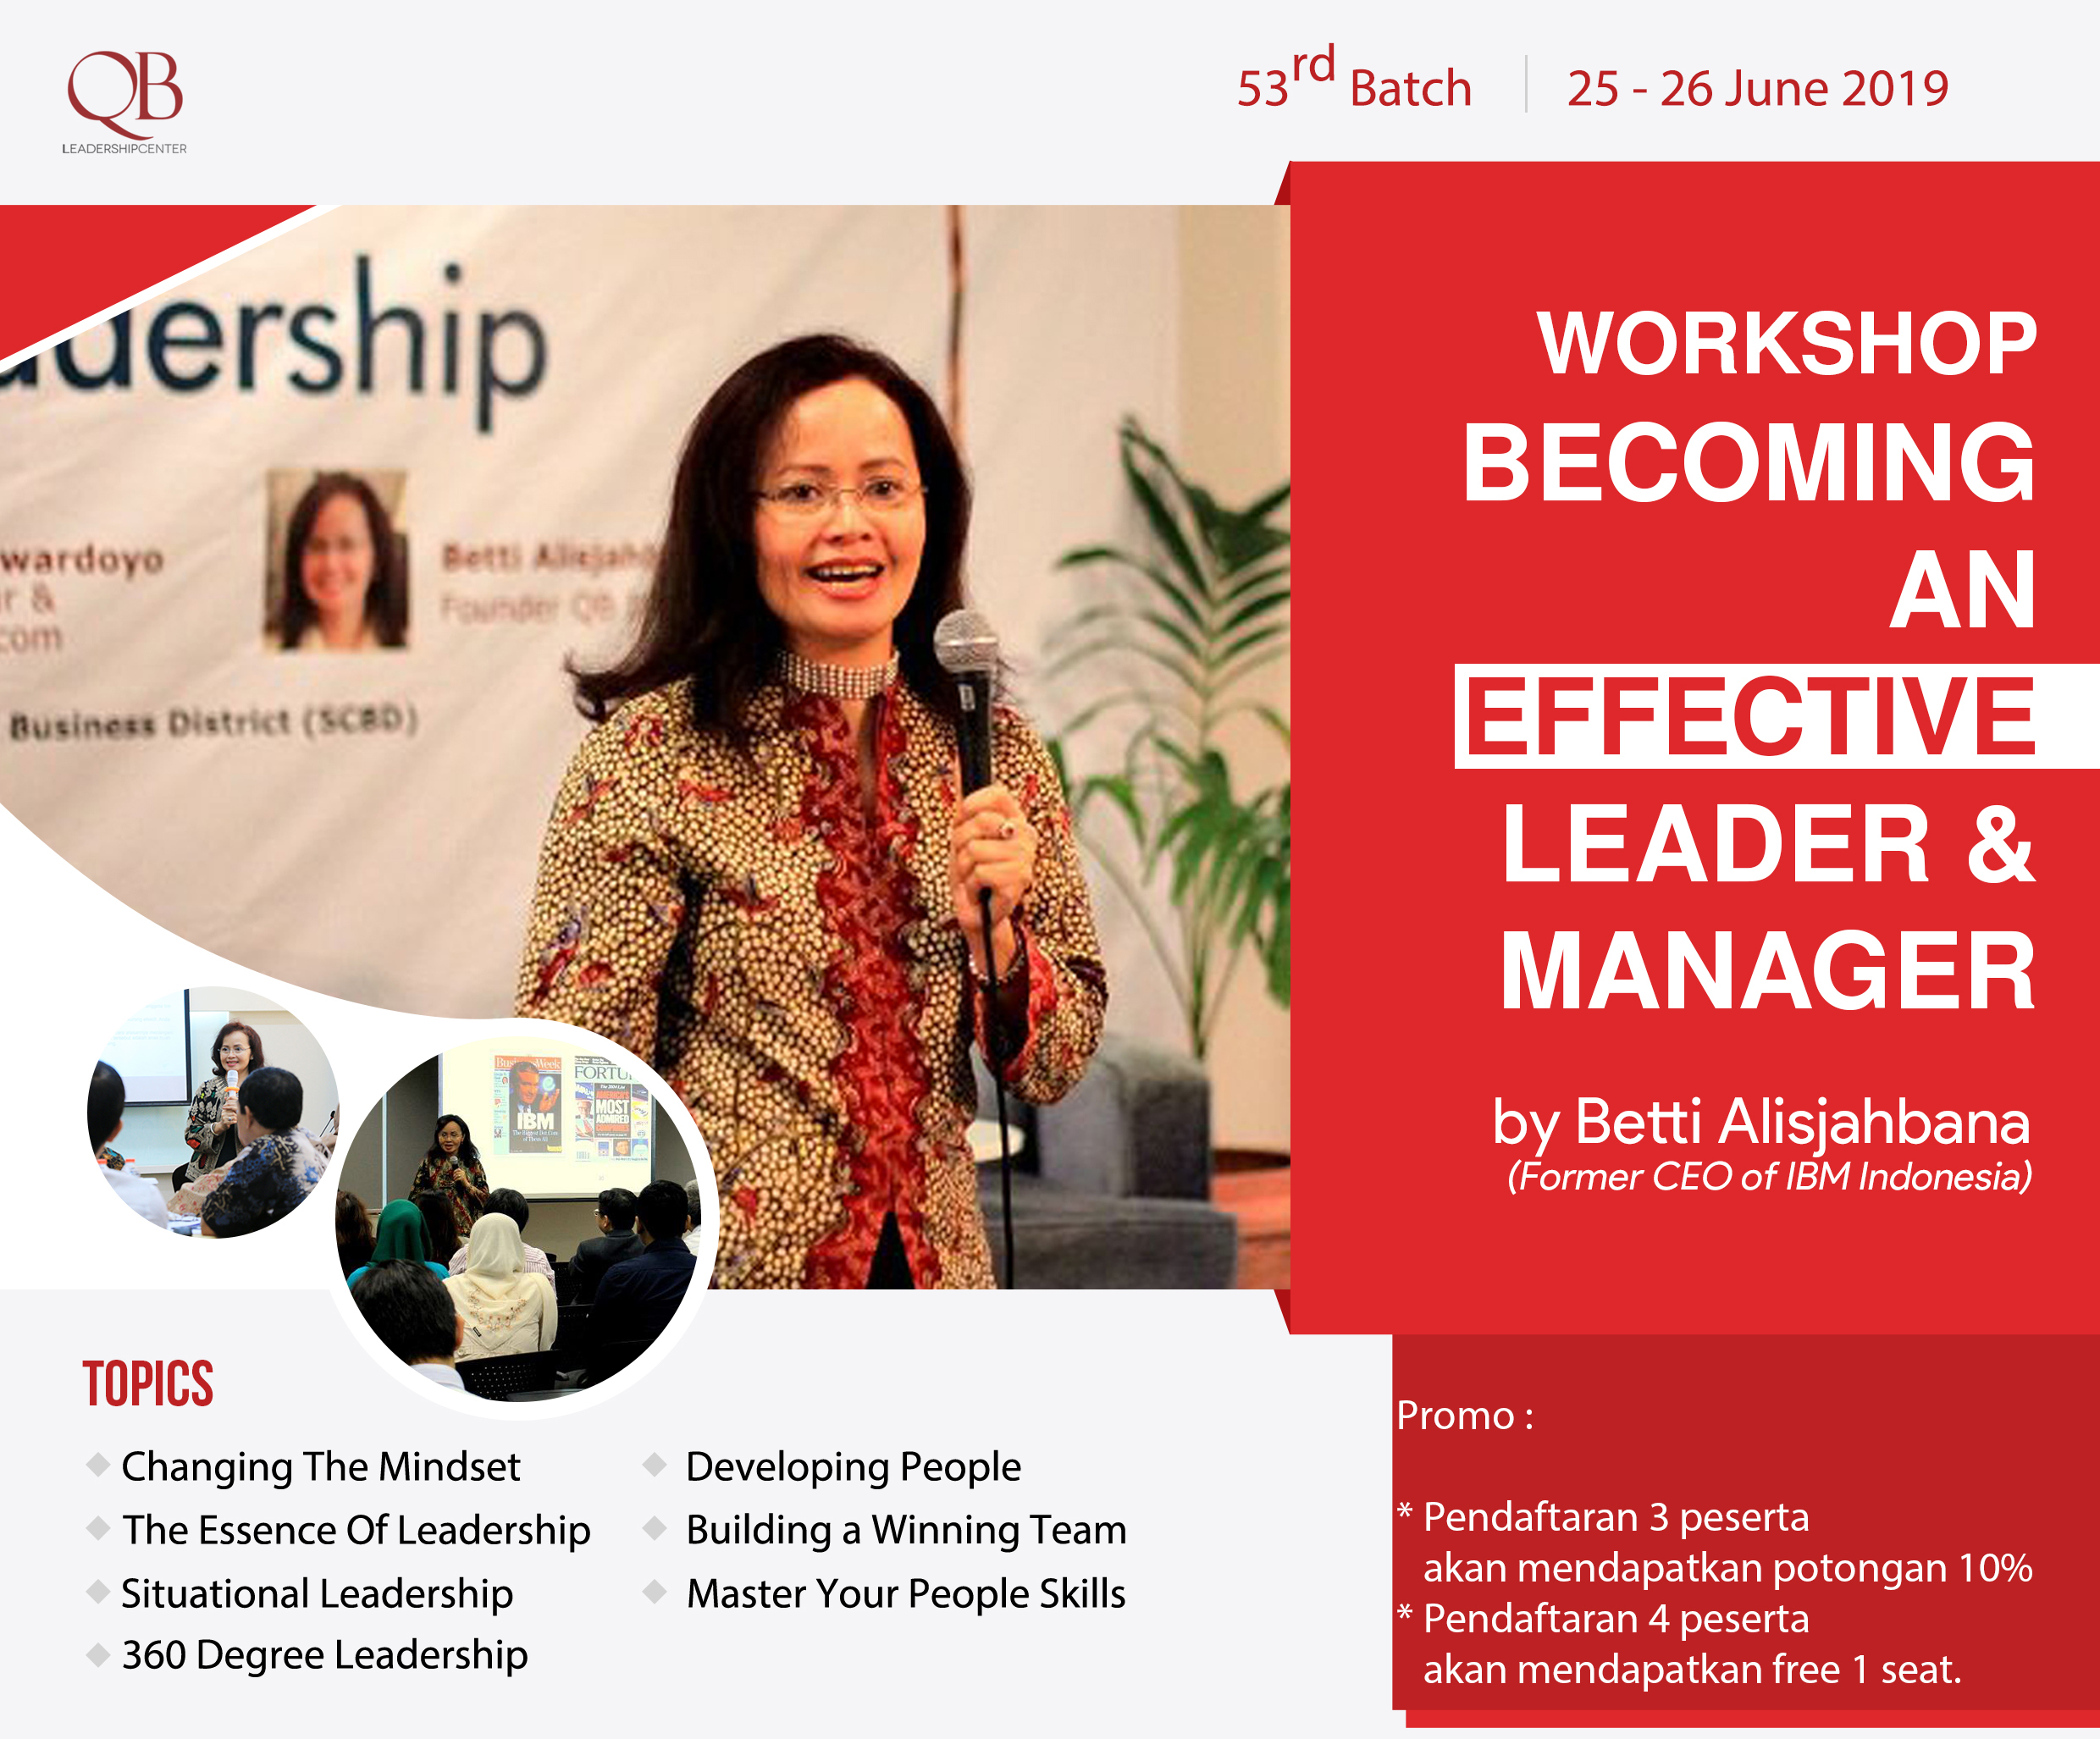 Workshop Becoming an Effective Leader & Manager